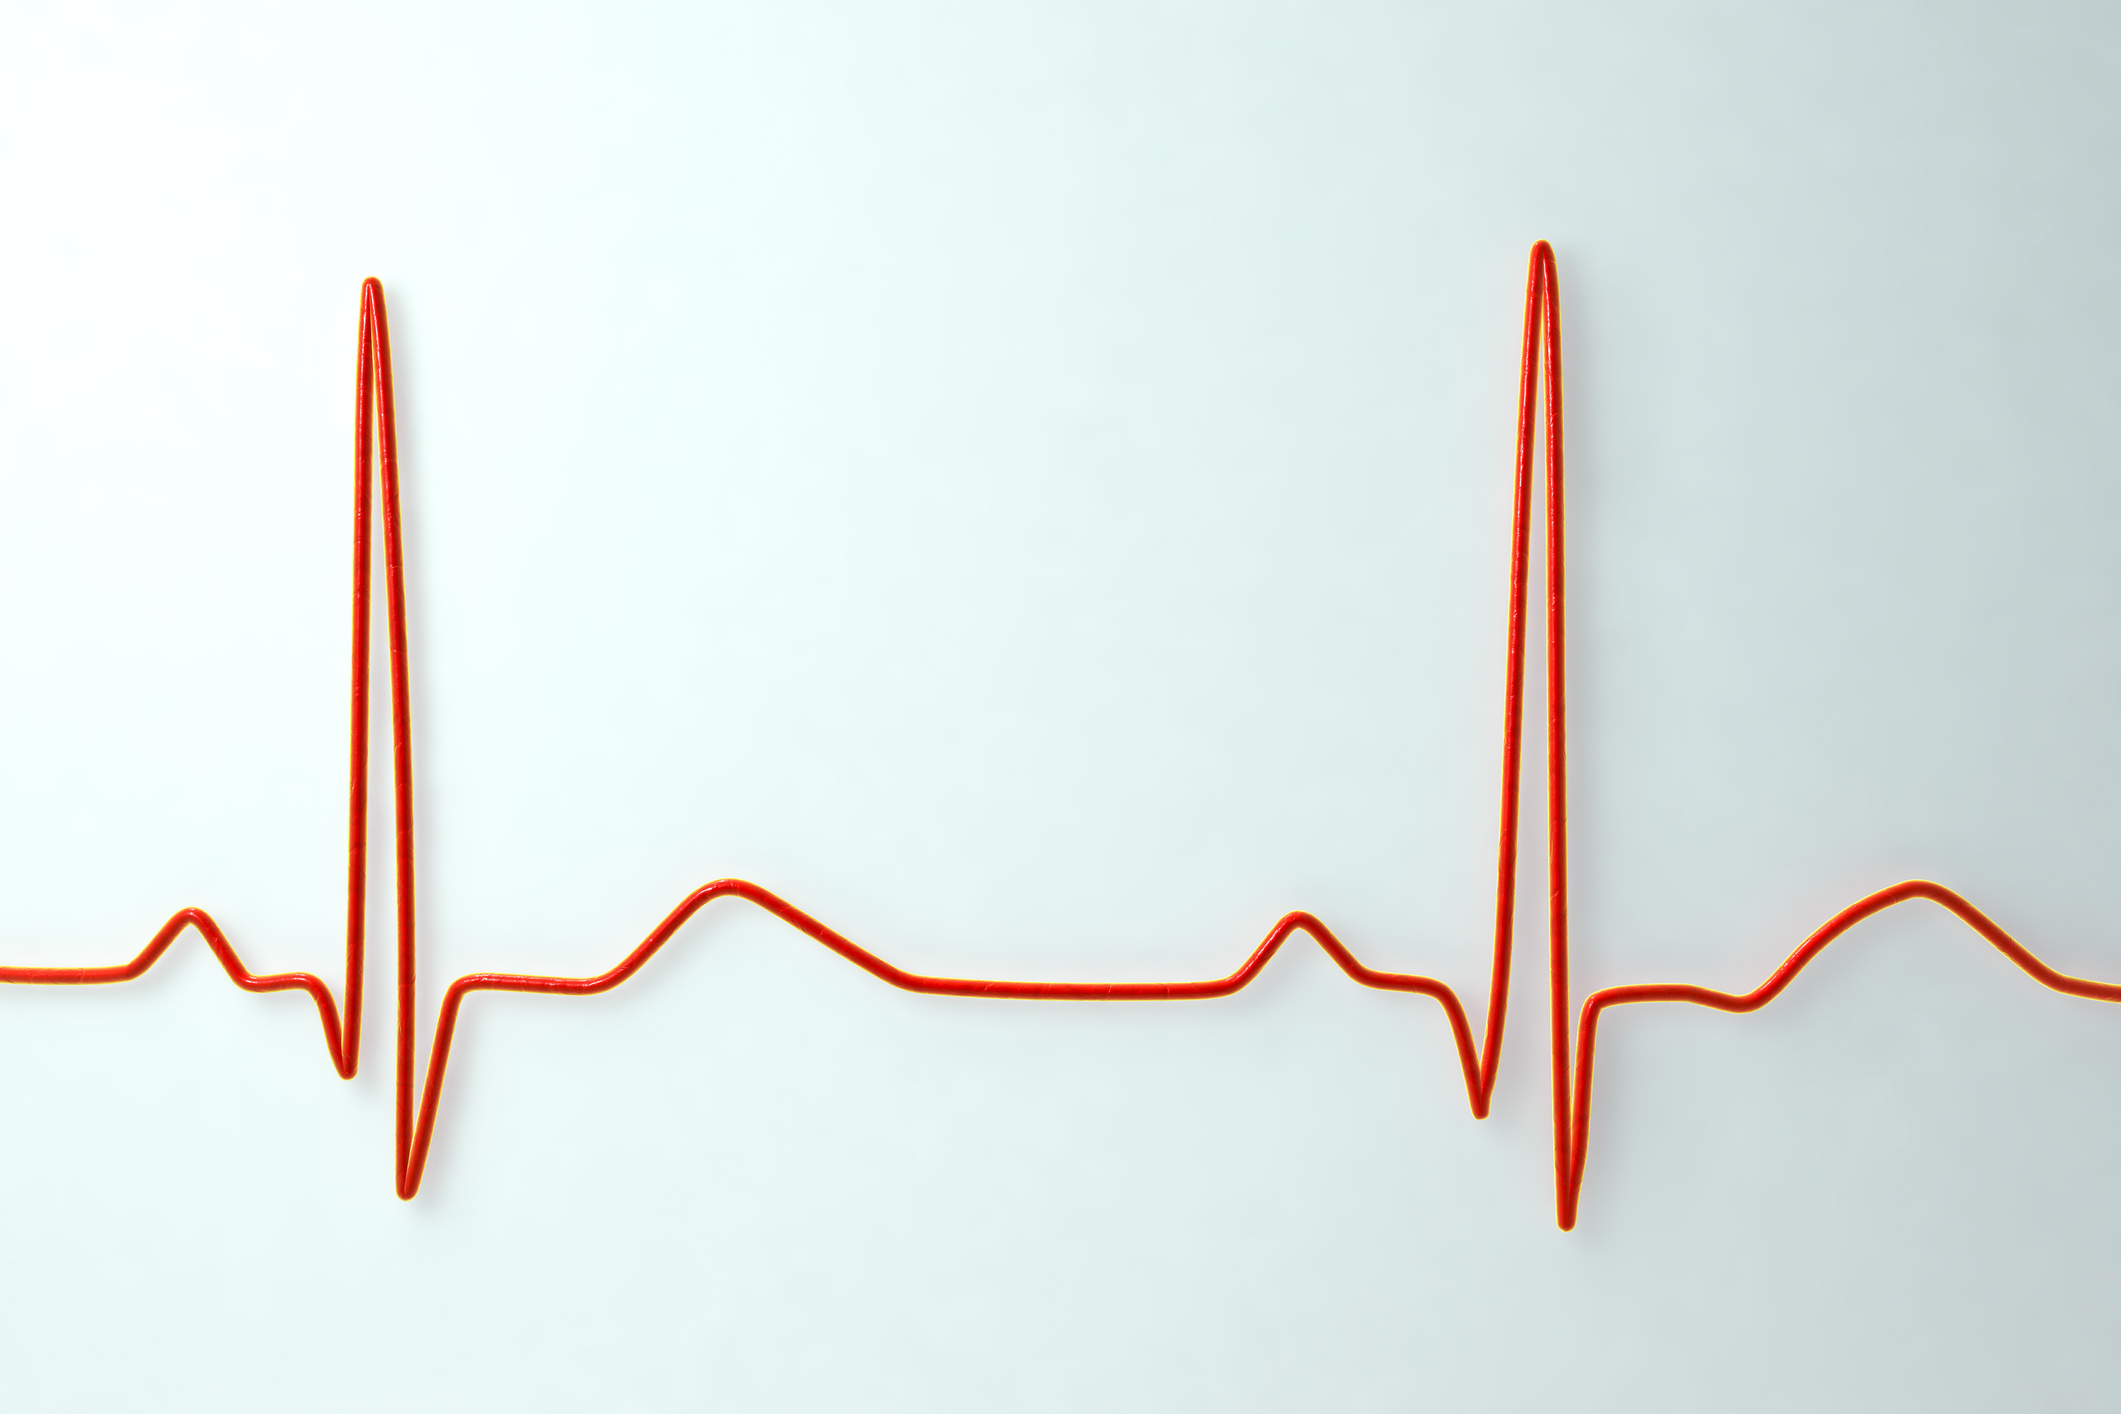 ECG. Computer illustration of an electrocardiogram (ECG) showing a normal heart rate.